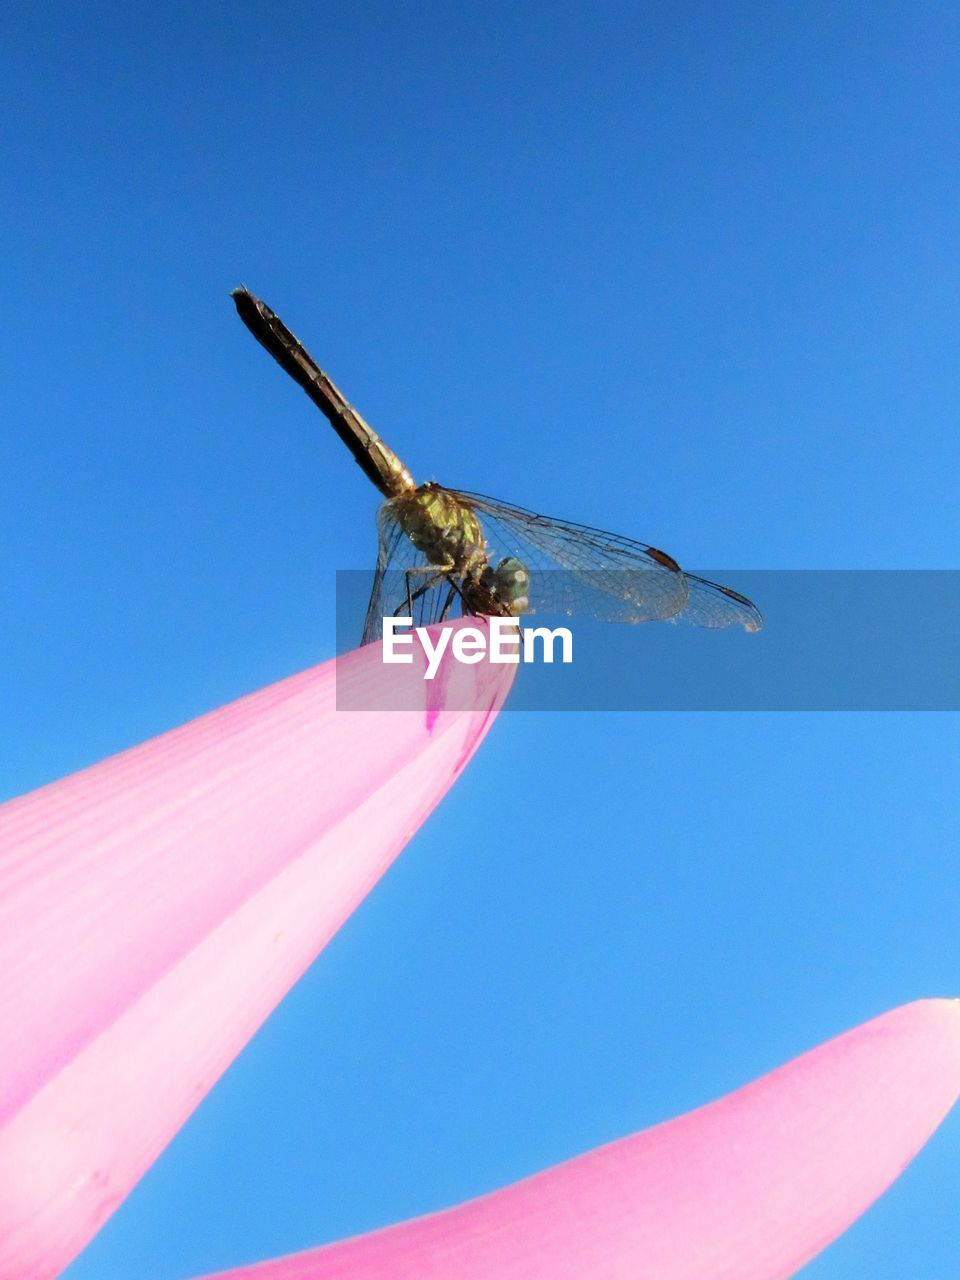 blue, one animal, clear sky, sky, animal themes, animals in the wild, animal, day, insect, animal wildlife, invertebrate, nature, close-up, copy space, low angle view, pink color, animal wing, outdoors, no people, sunlight